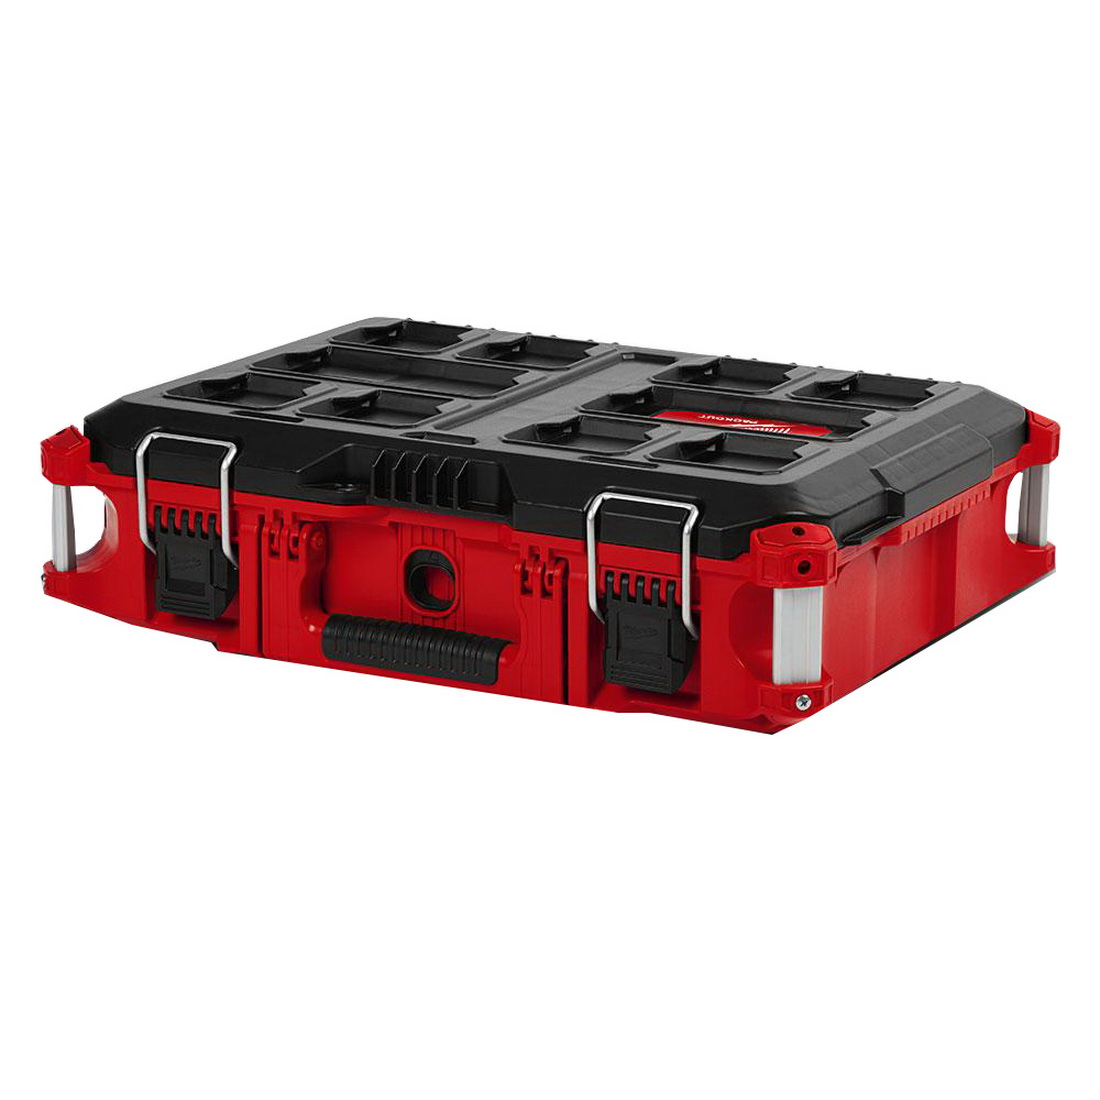 PACKOUT Small Tool Box 34kg 561 x 408 x 167mm Polymer 48228424